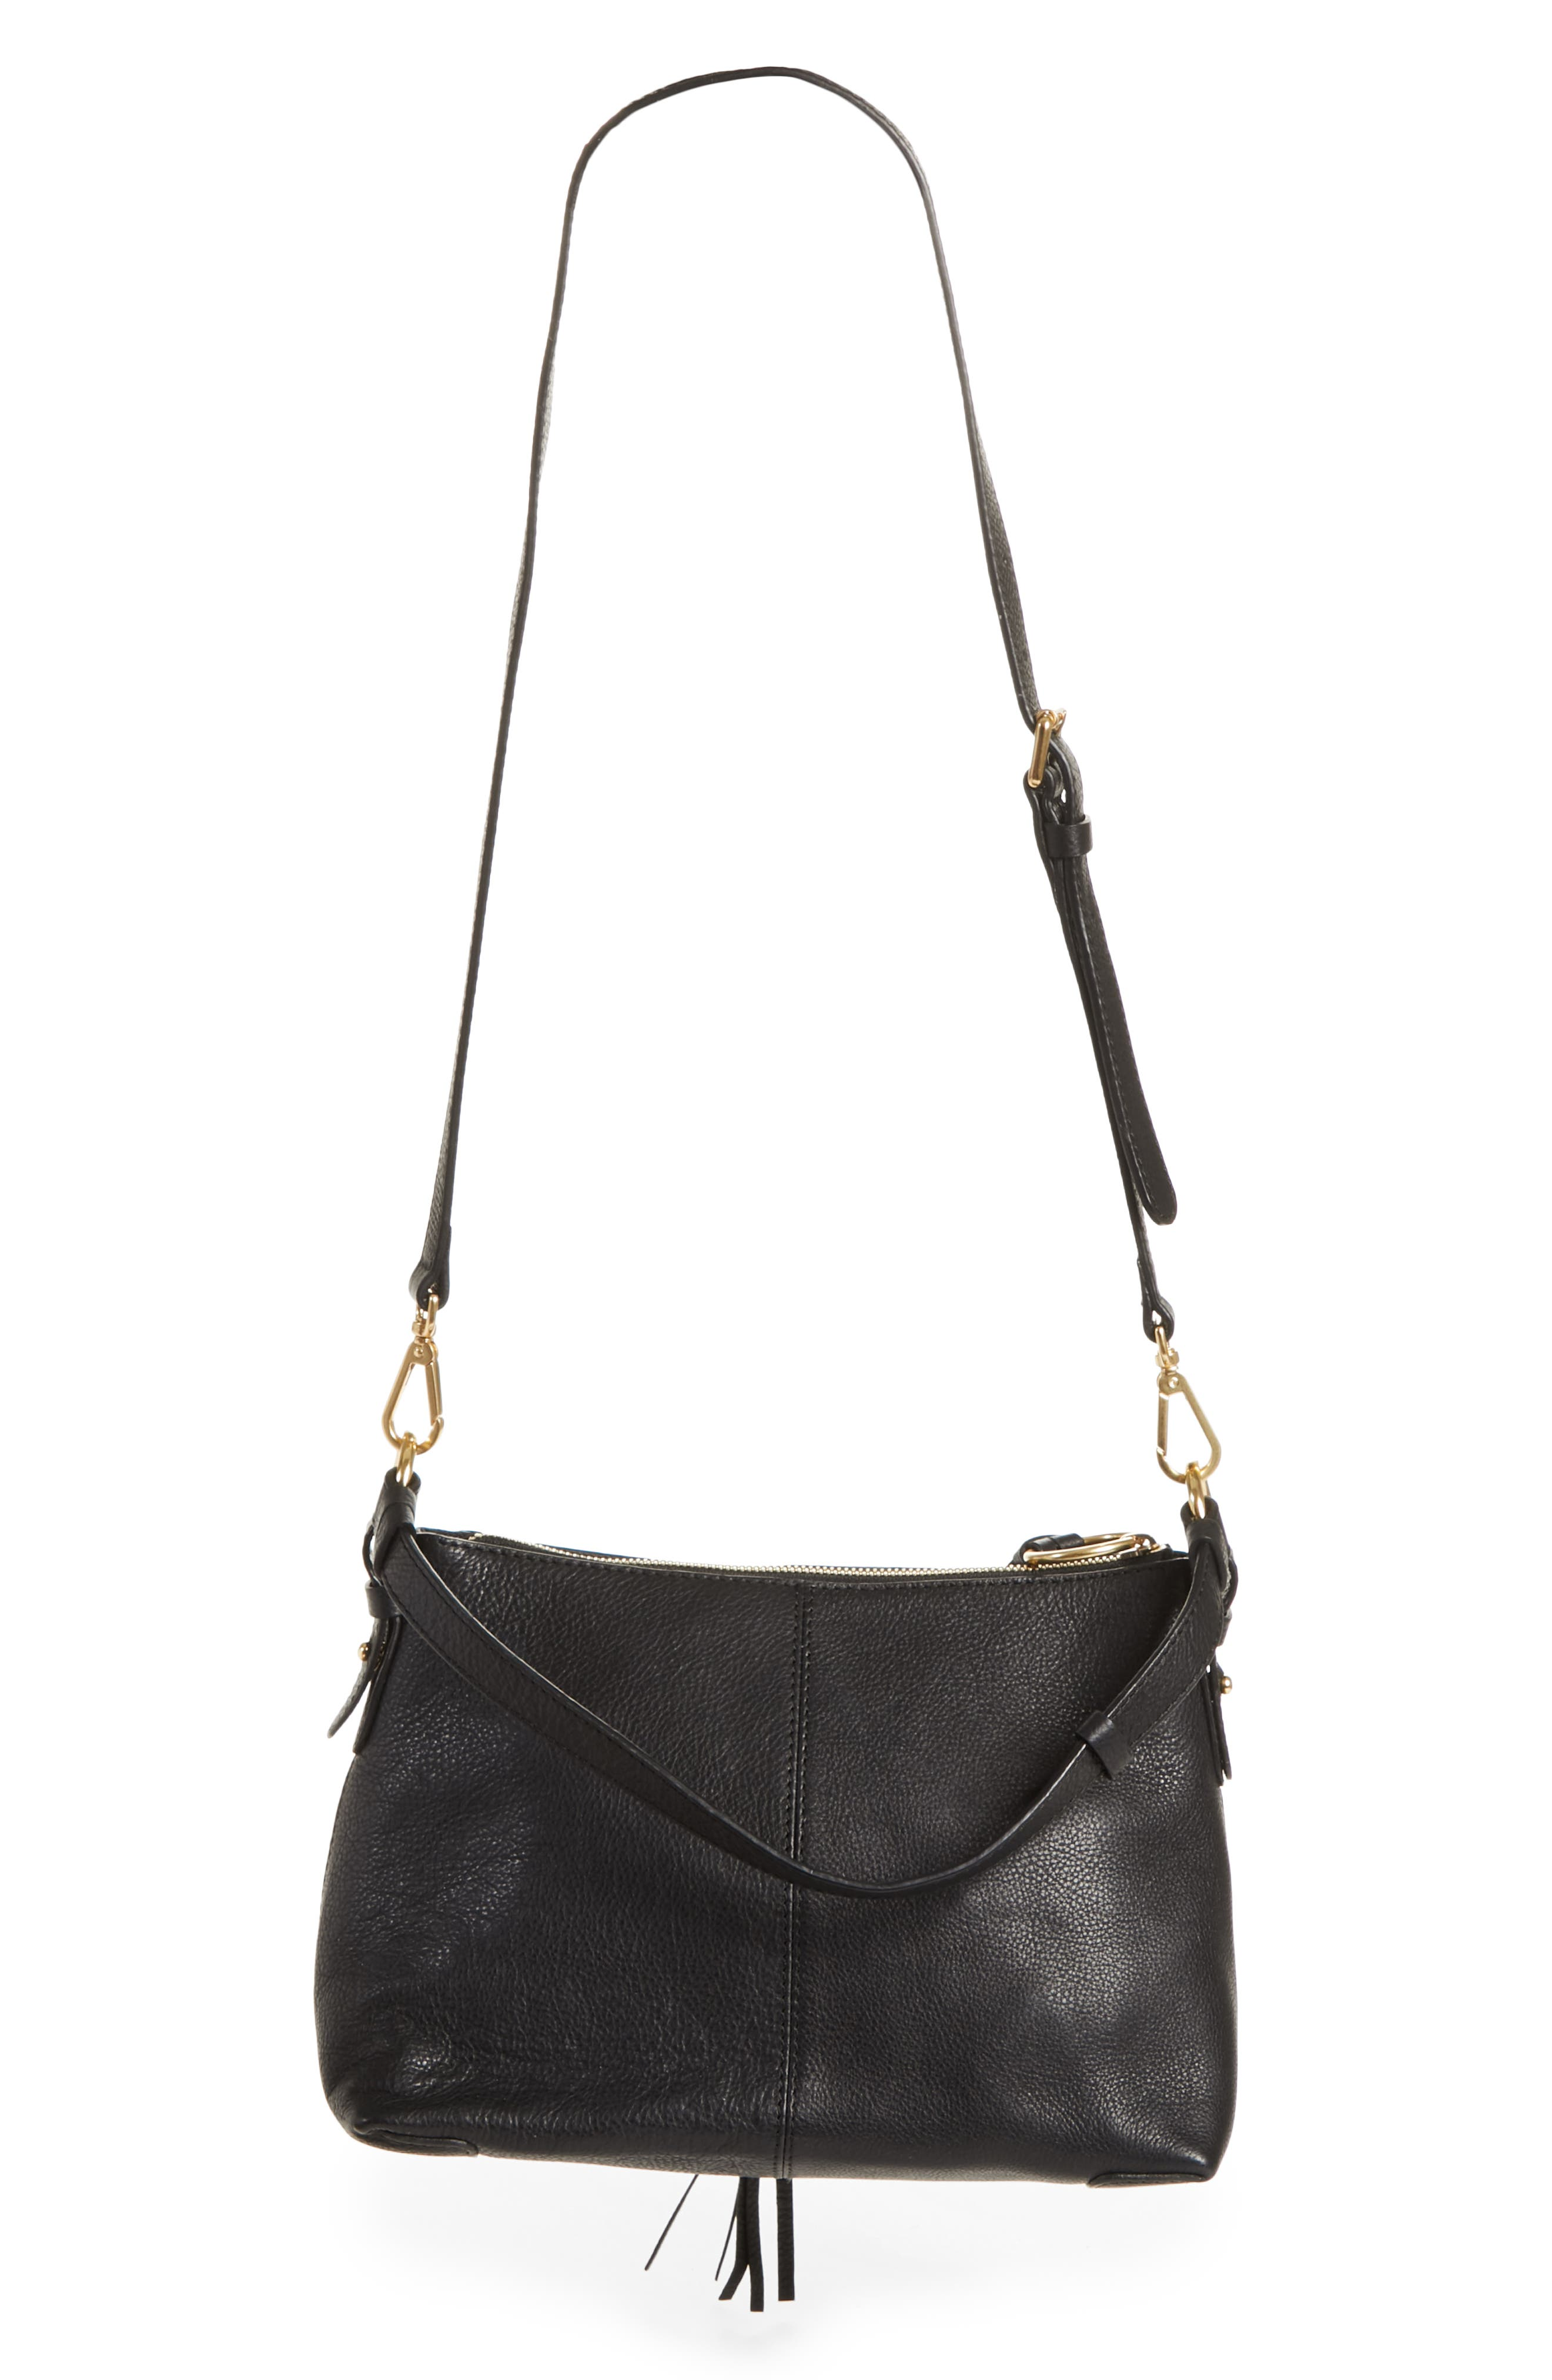 SEE BY CHLOÉ, Small Joan Suede & Leather Crossbody Bag, Alternate thumbnail 3, color, BLACK